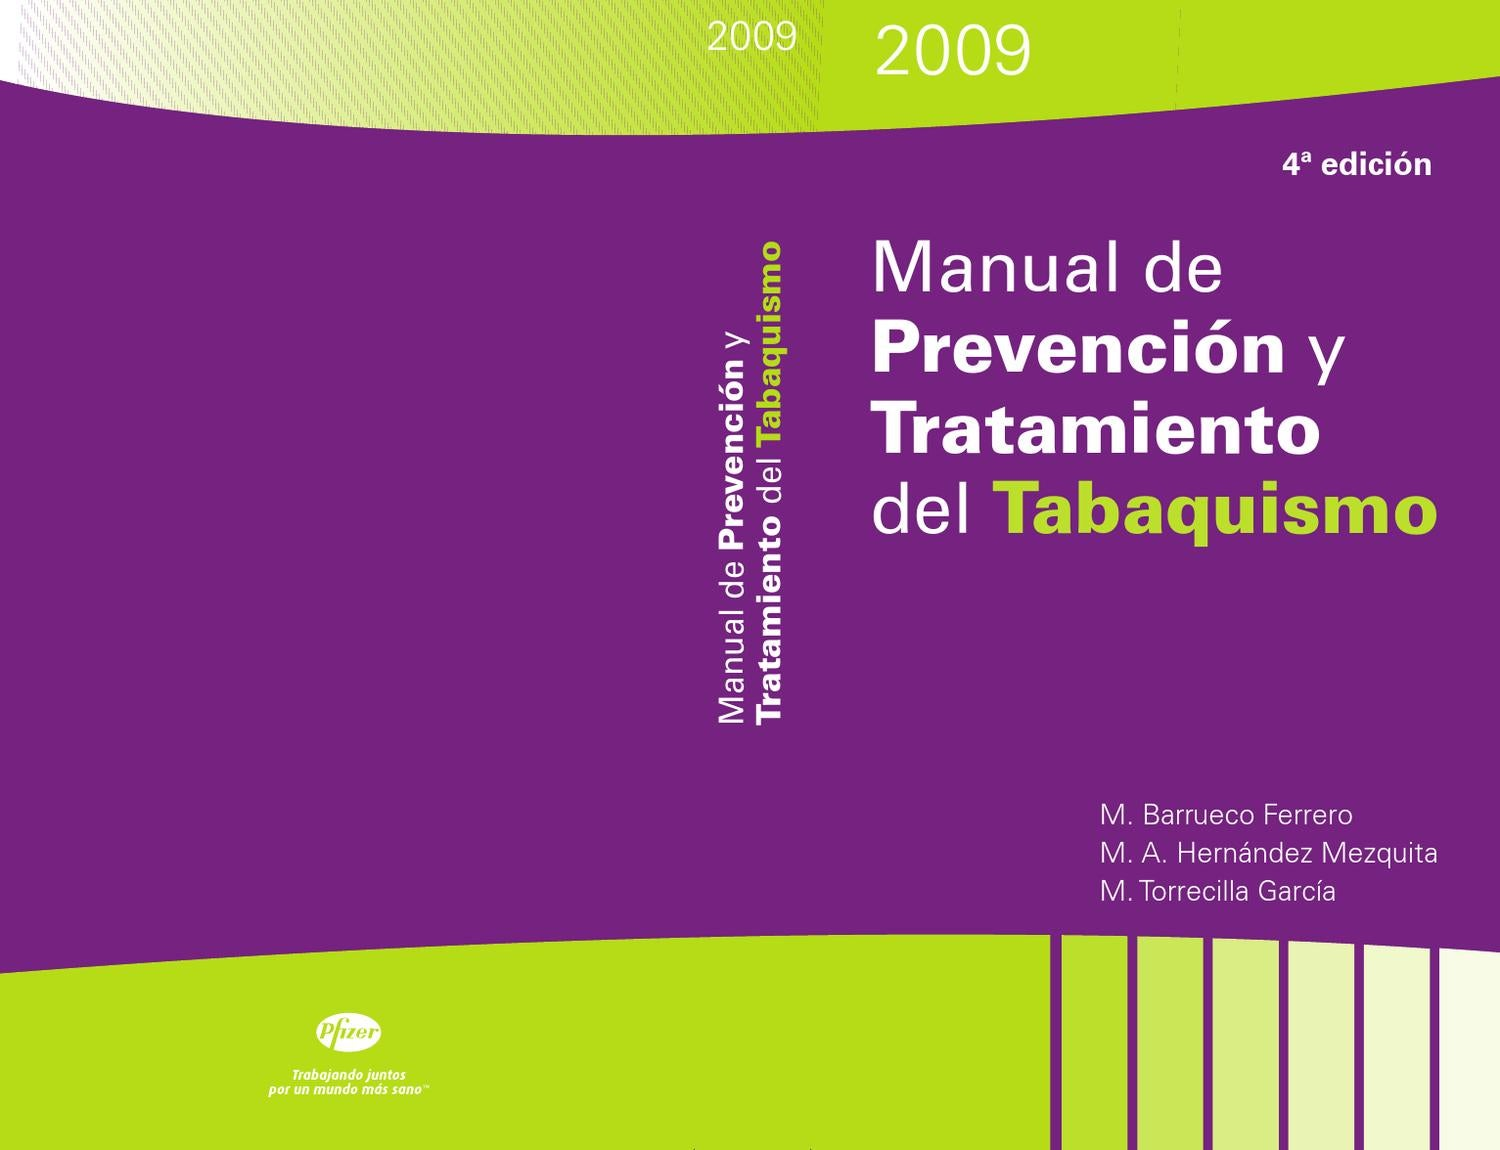 Manual de Tabaquismo. 4ª Edición by SEPAR - issuu